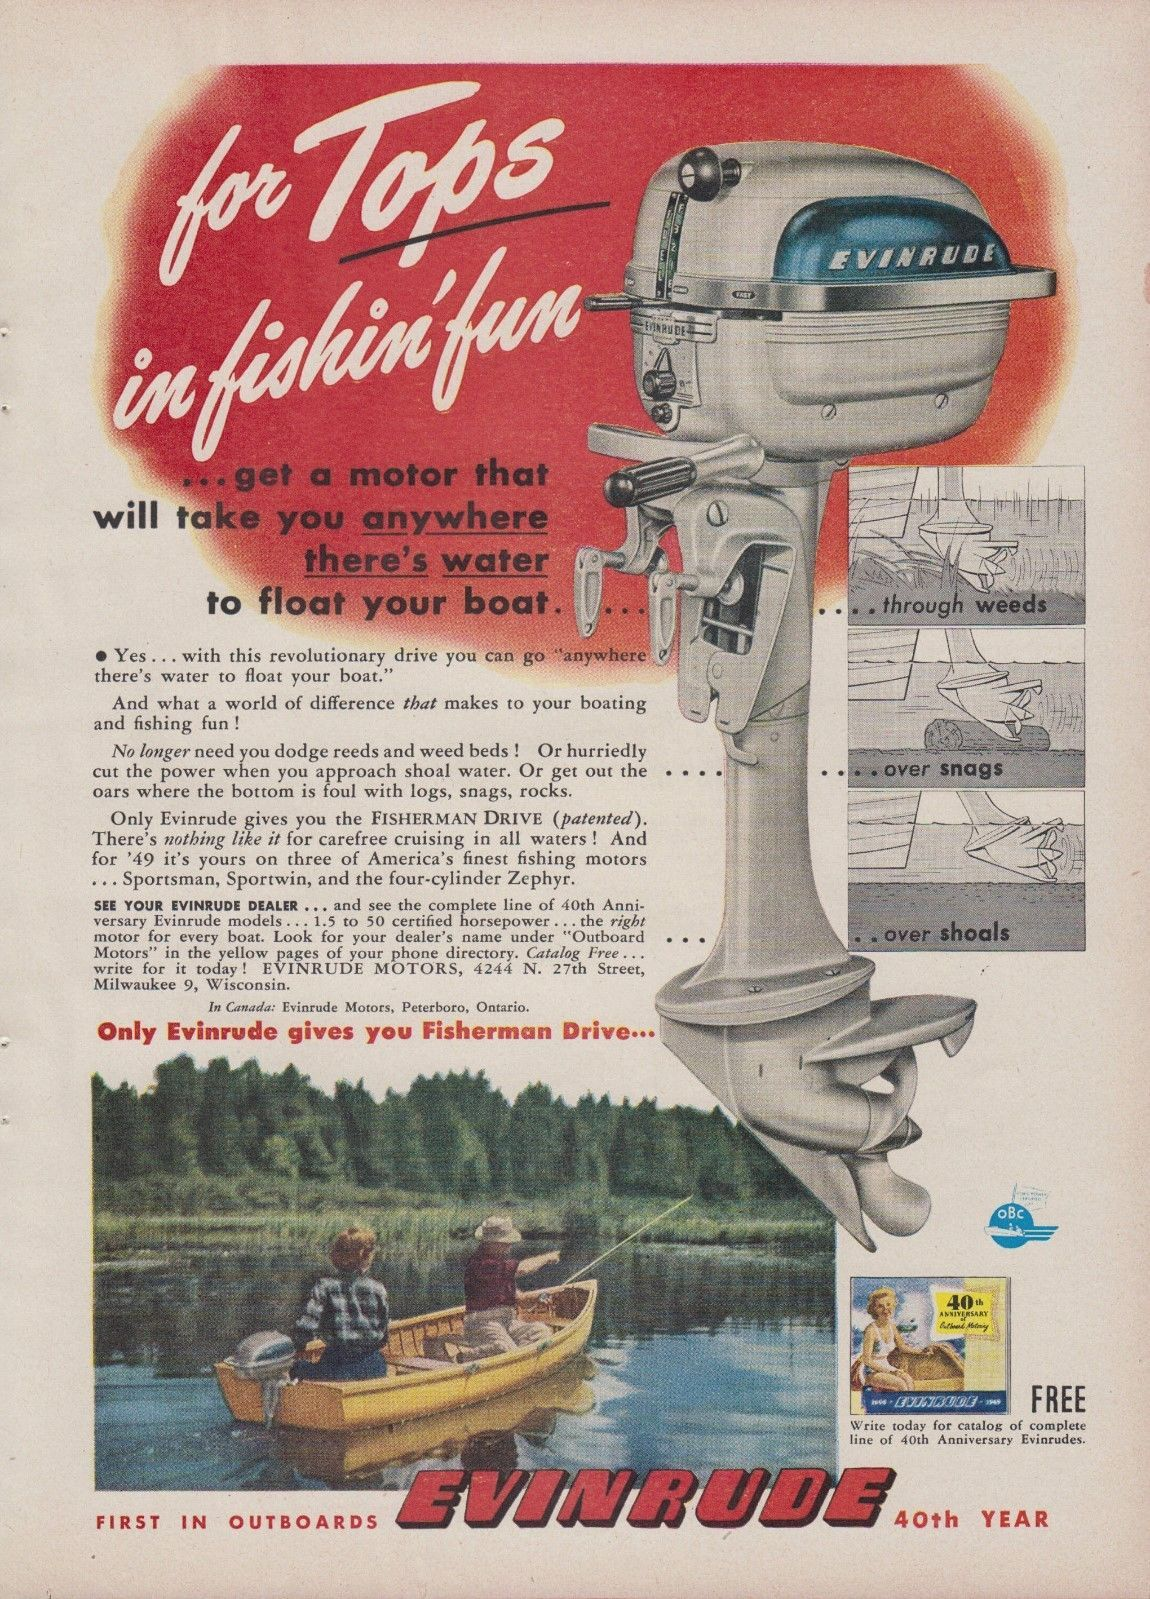 medium resolution of 1949 evinrude zephyr outboard motor ad w fisherman drive